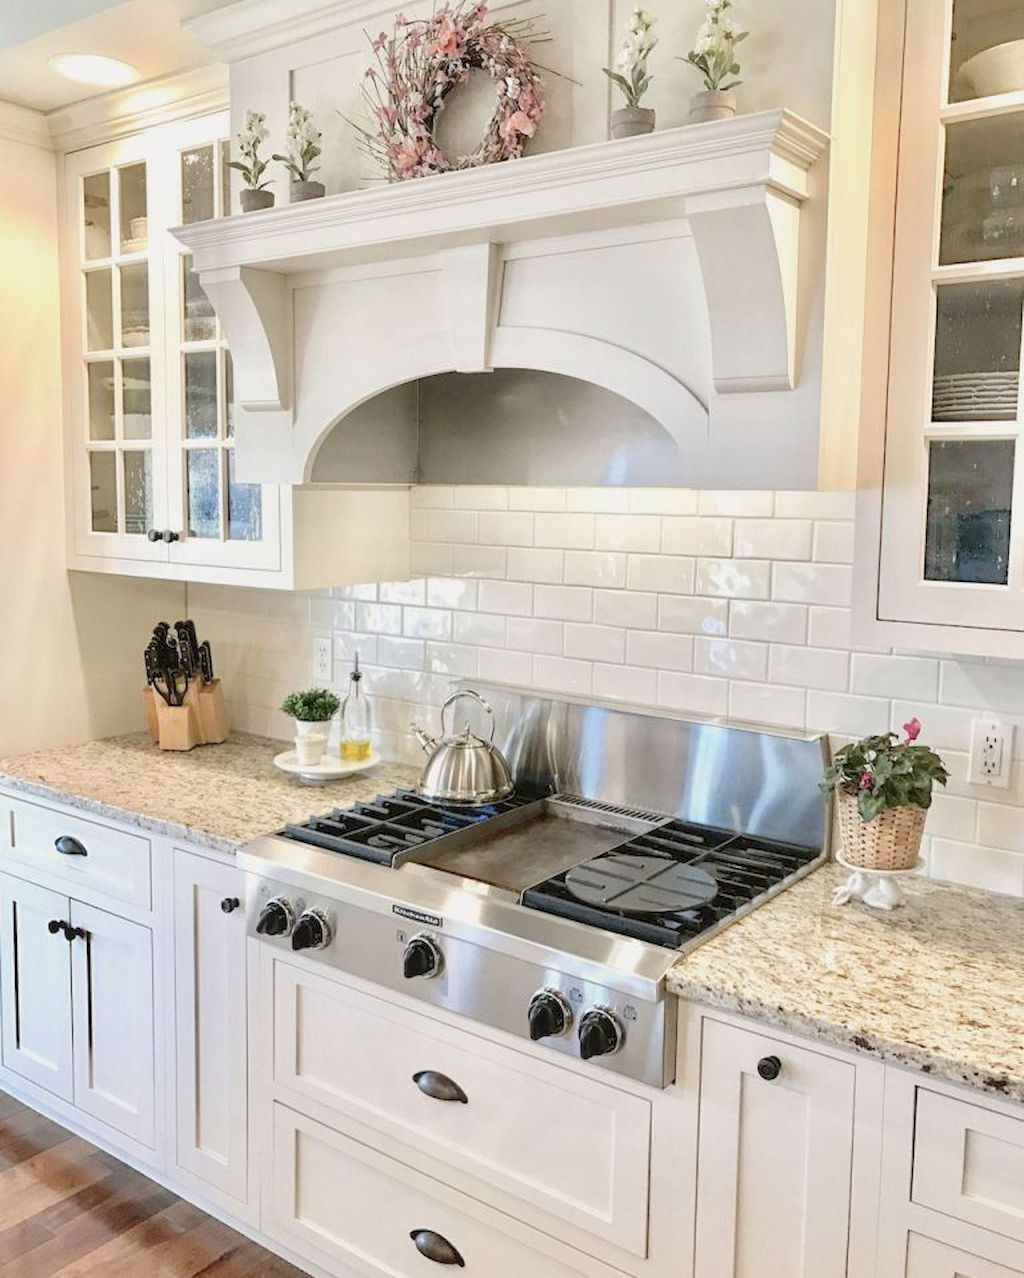 Gray Kitchen Cabinets Colors 2019 Graykitchencabinets Modern Gray Kitchen Cabinets Kitchen Cabinets Decor Antique White Kitchen Antique White Kitchen Cabinets